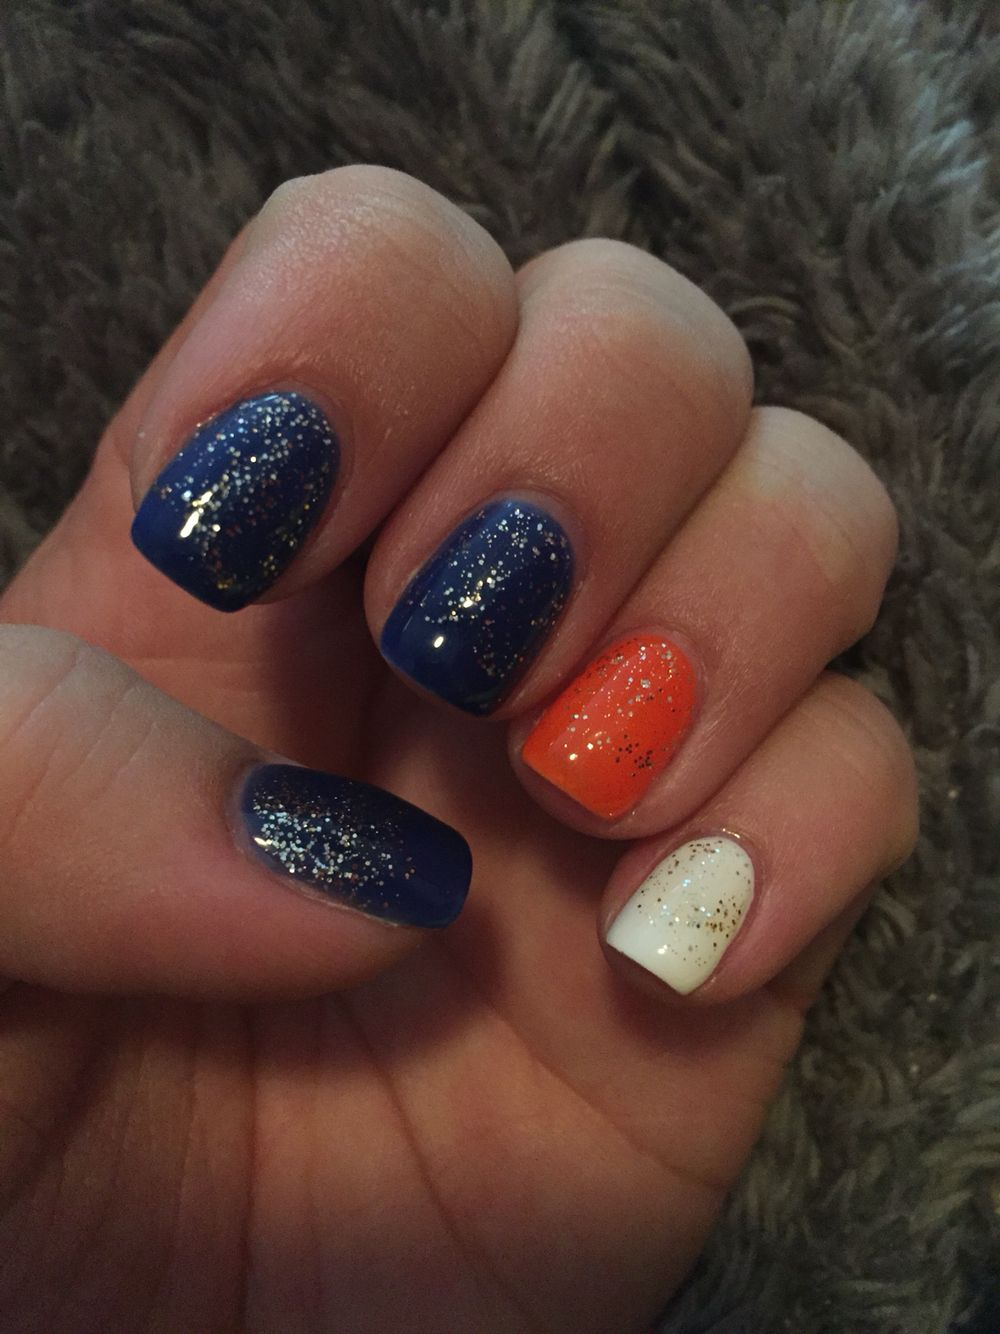 Denver Bronocs Nails! #BroncosCountry #Shellac | My Denver Broncos ...